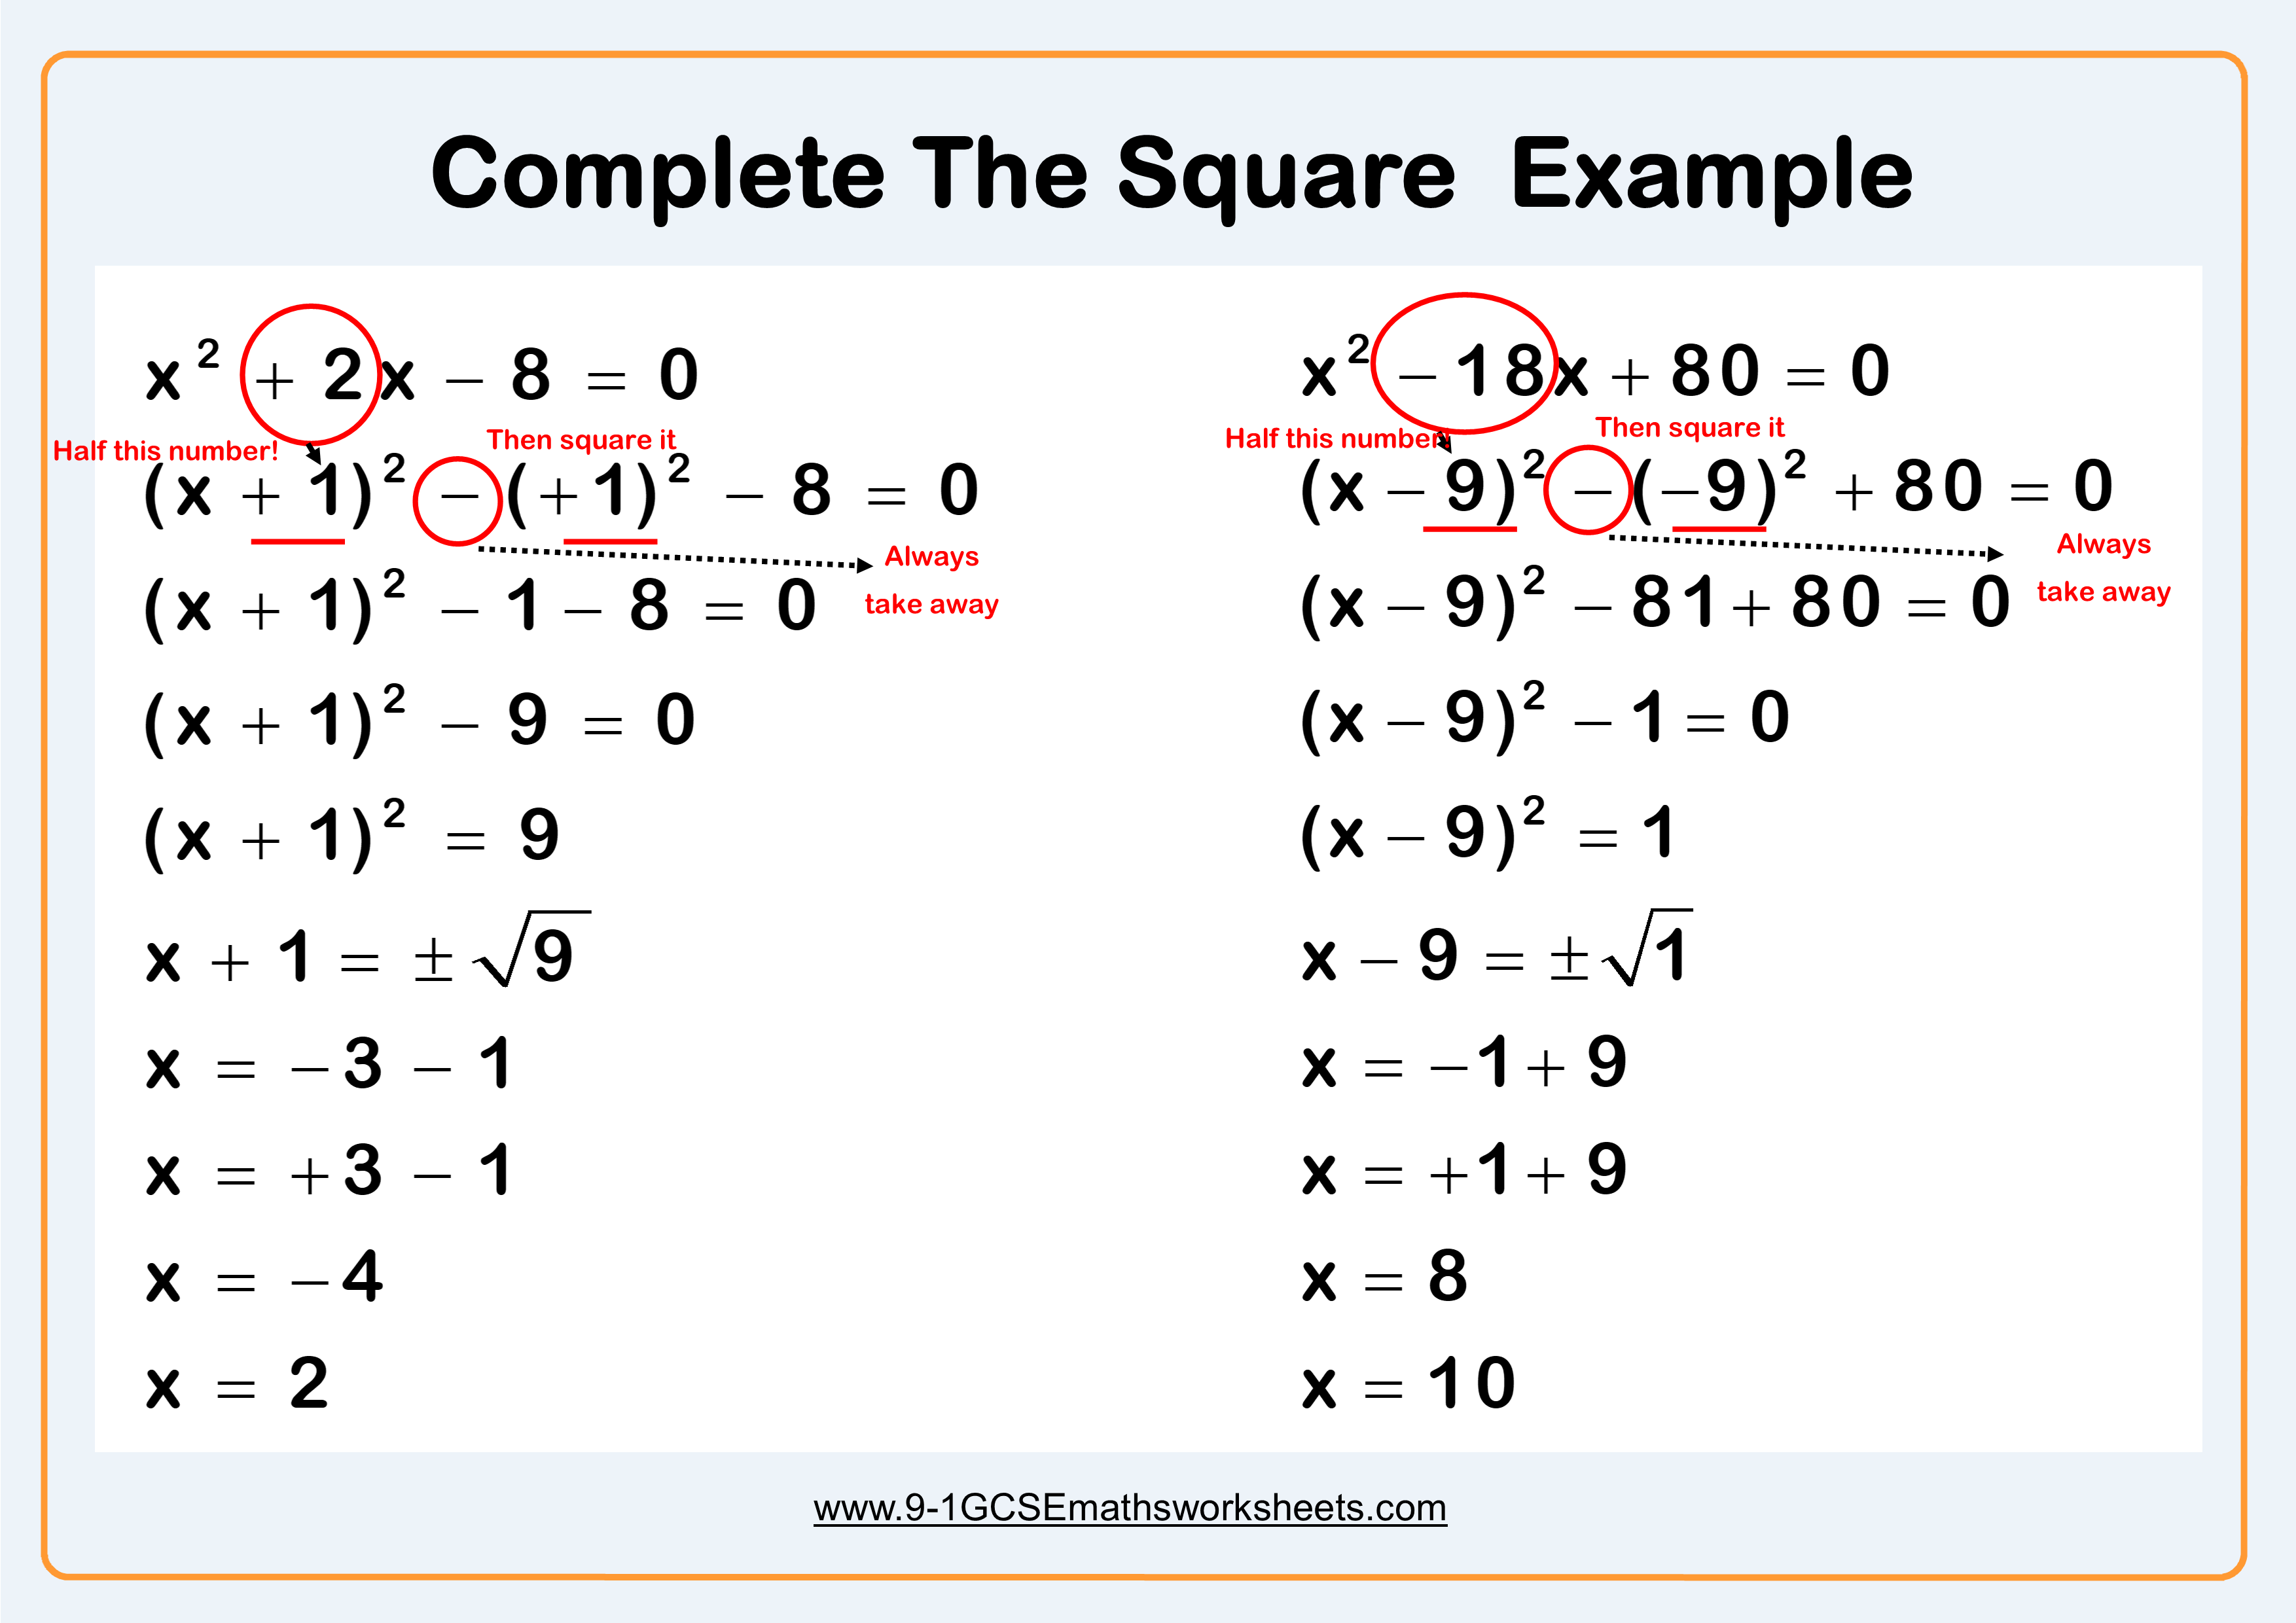 Completing The Square Example